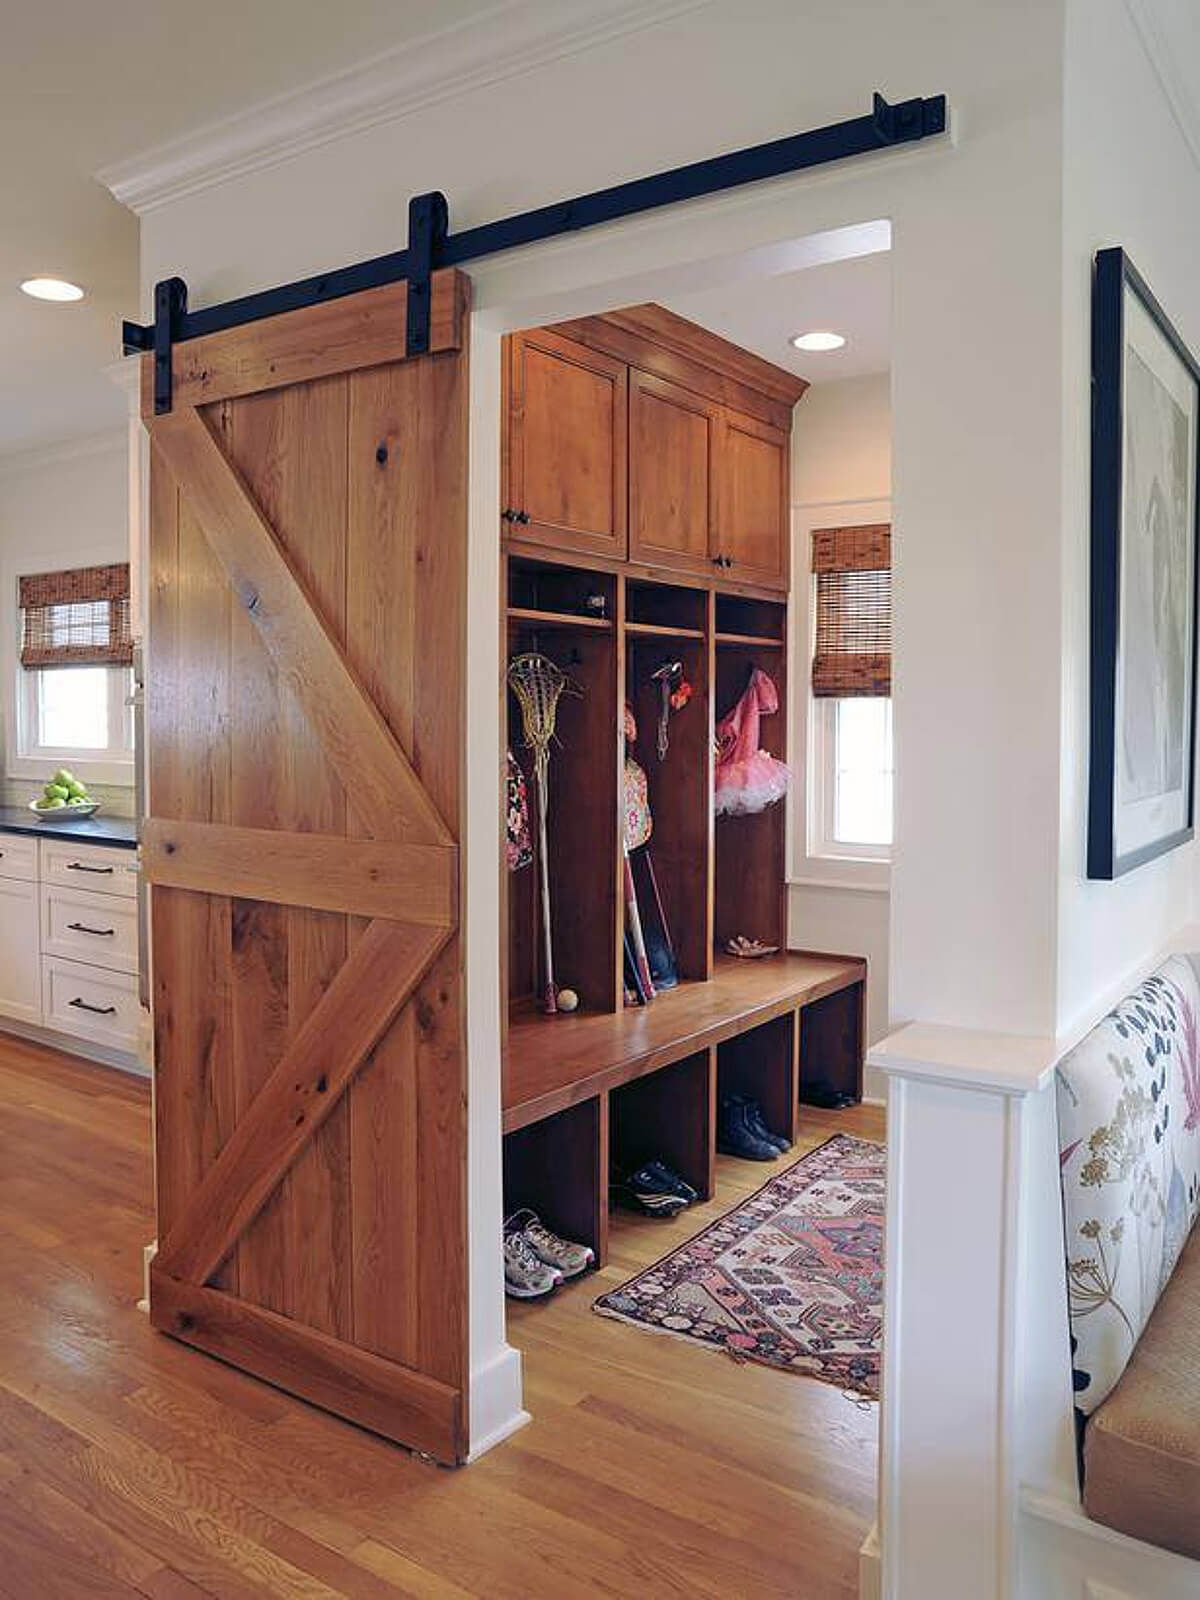 15 unique mudroom design ideas - Mudroom Design Ideas